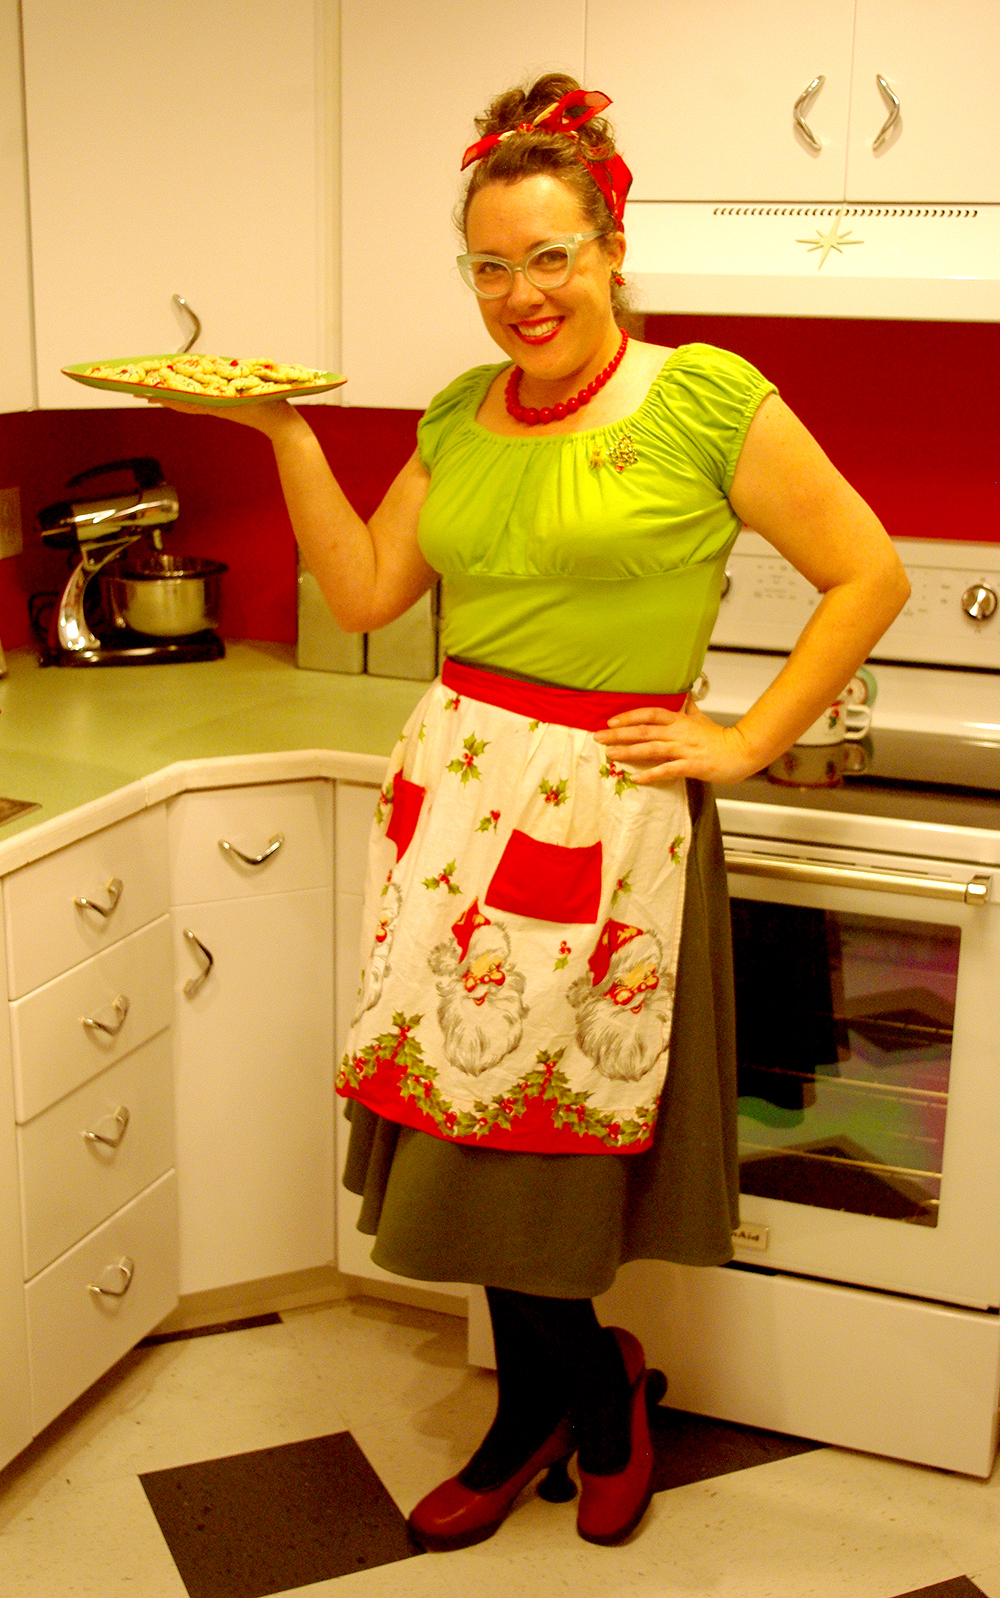 Merry Christmas, from my retro kitchen!